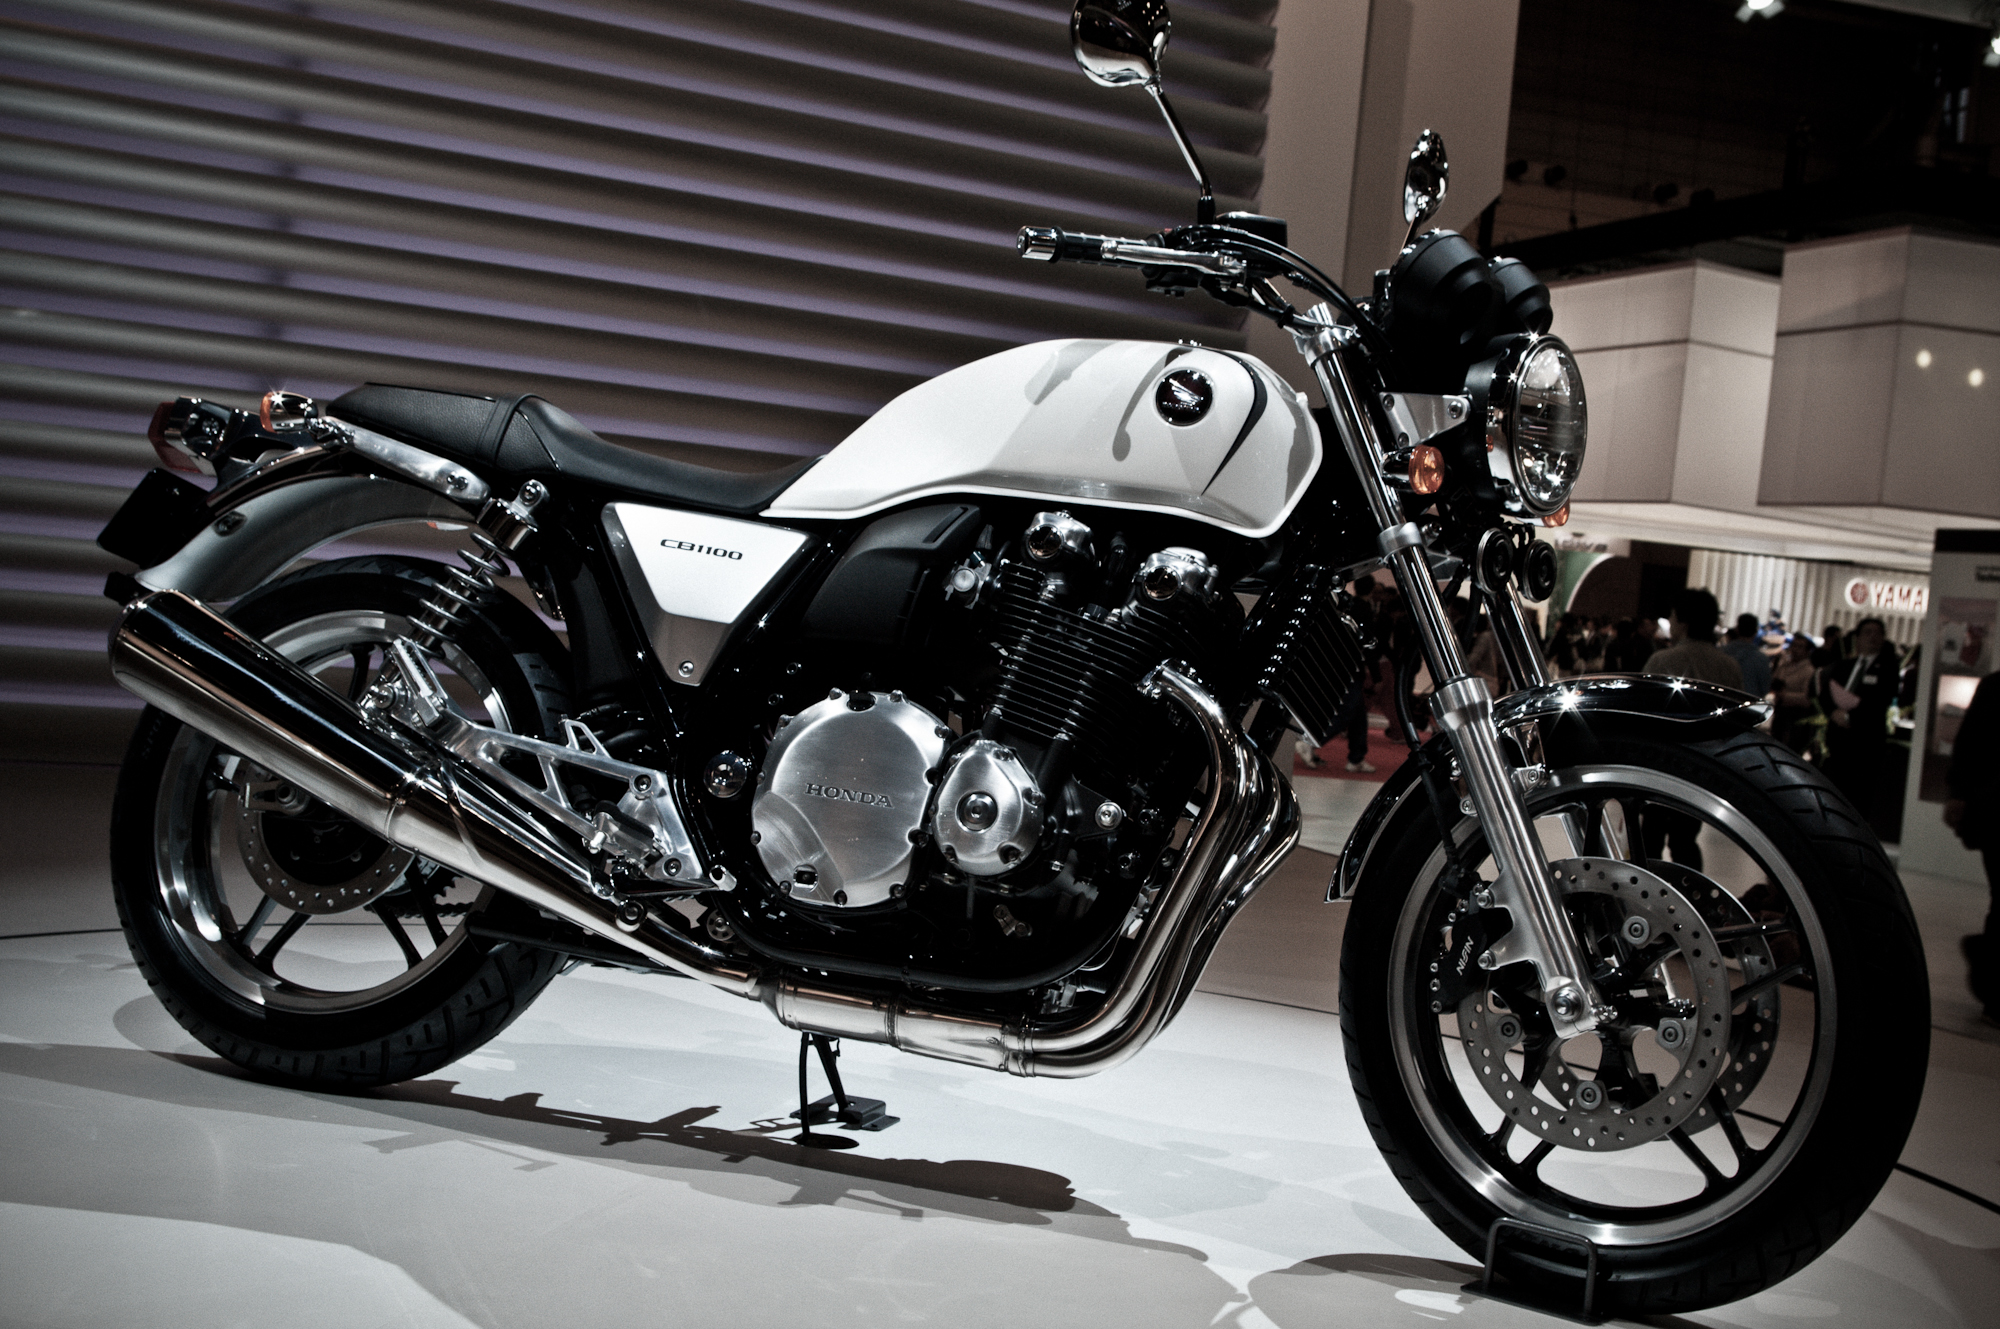 Honda cb1100 photo - 3